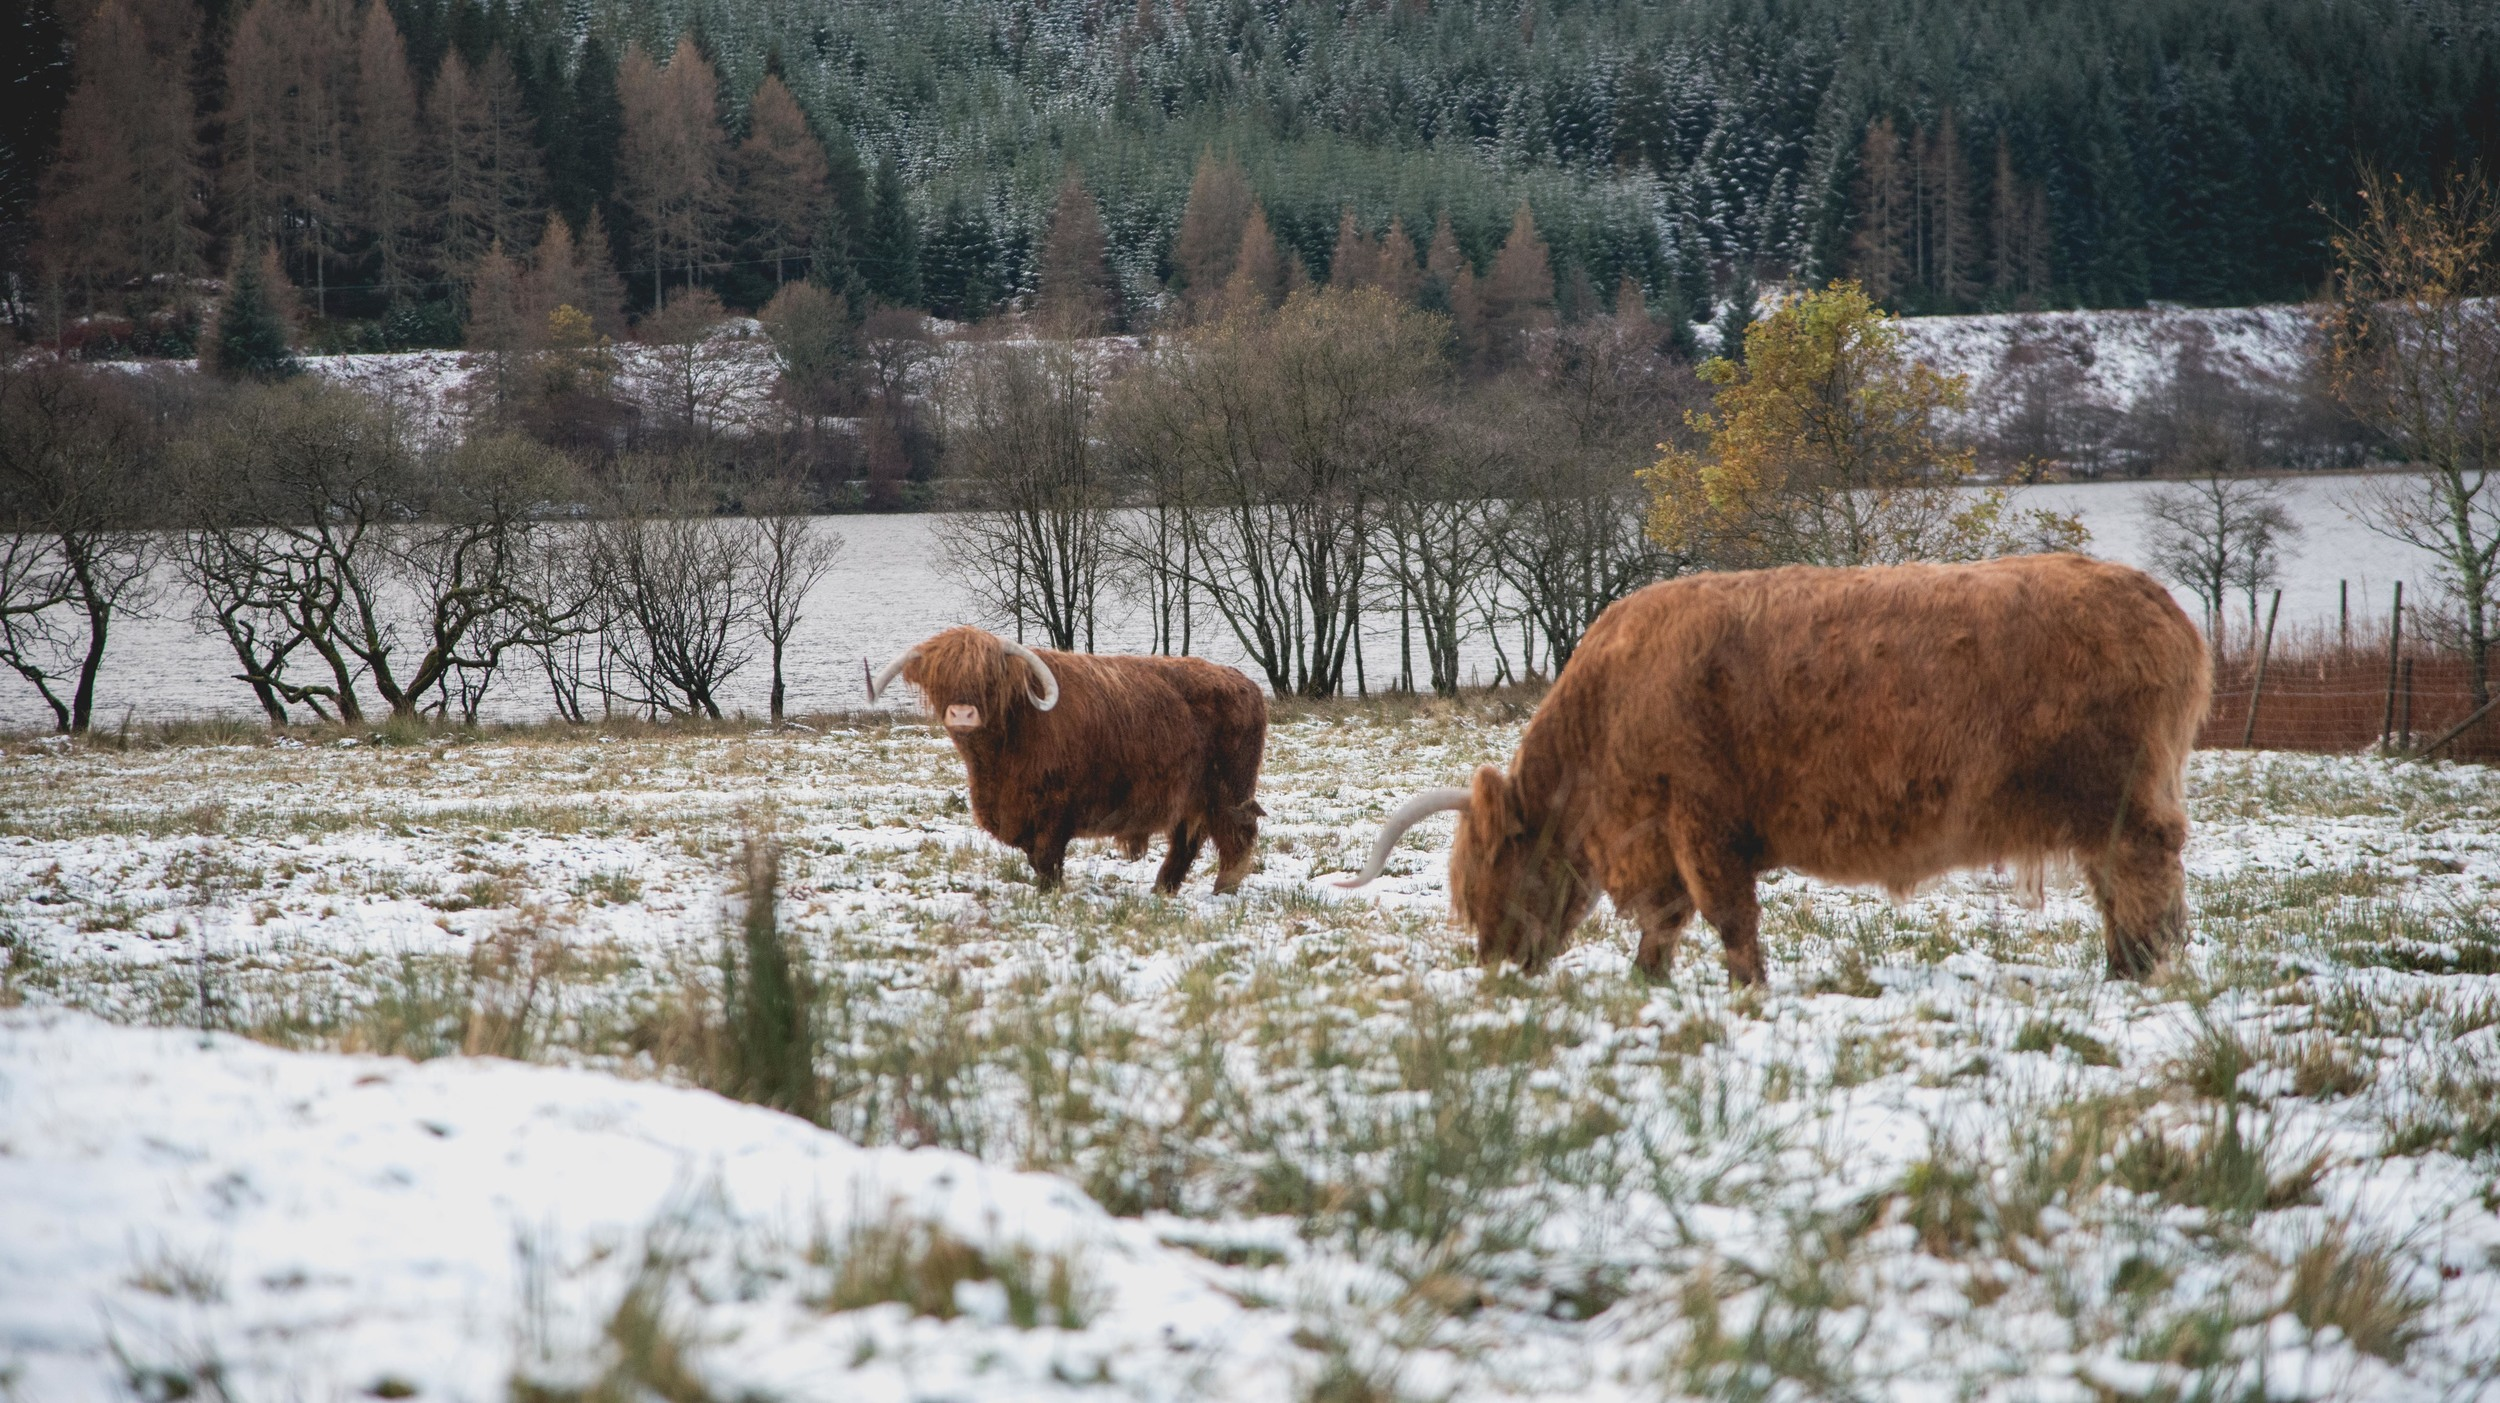 A few shaggy Highland Cows.